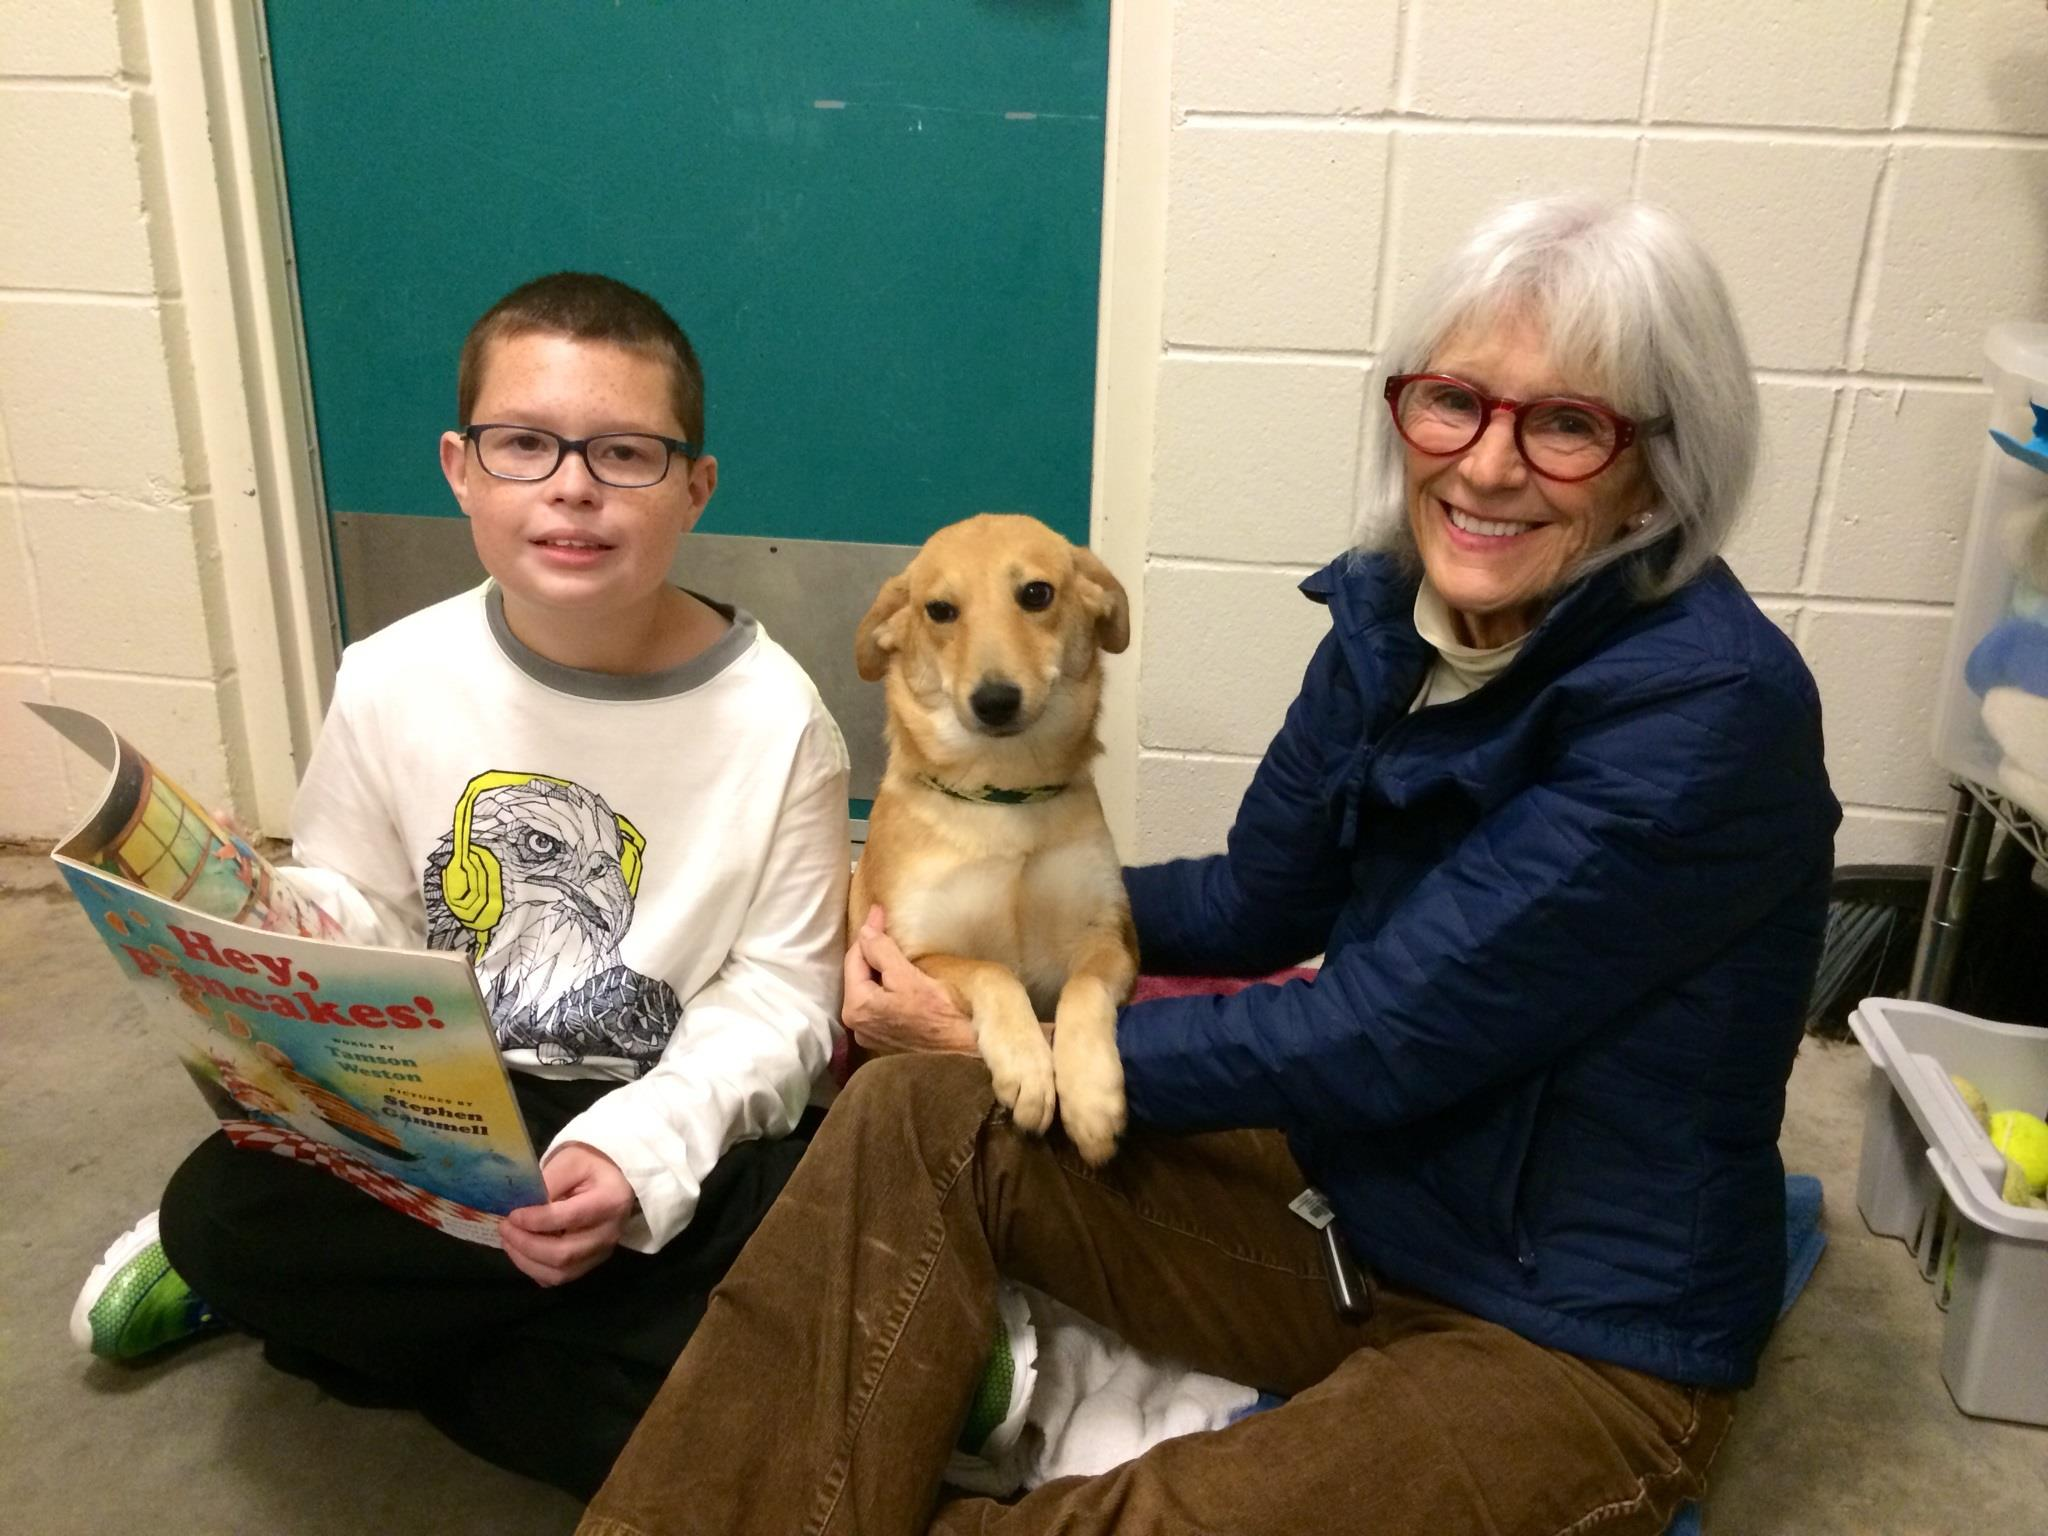 Volunteer Karen helps out during a FOTAS Dog Ears Reading session. This recurring event gives children an opportunity to read to the shelter animals.